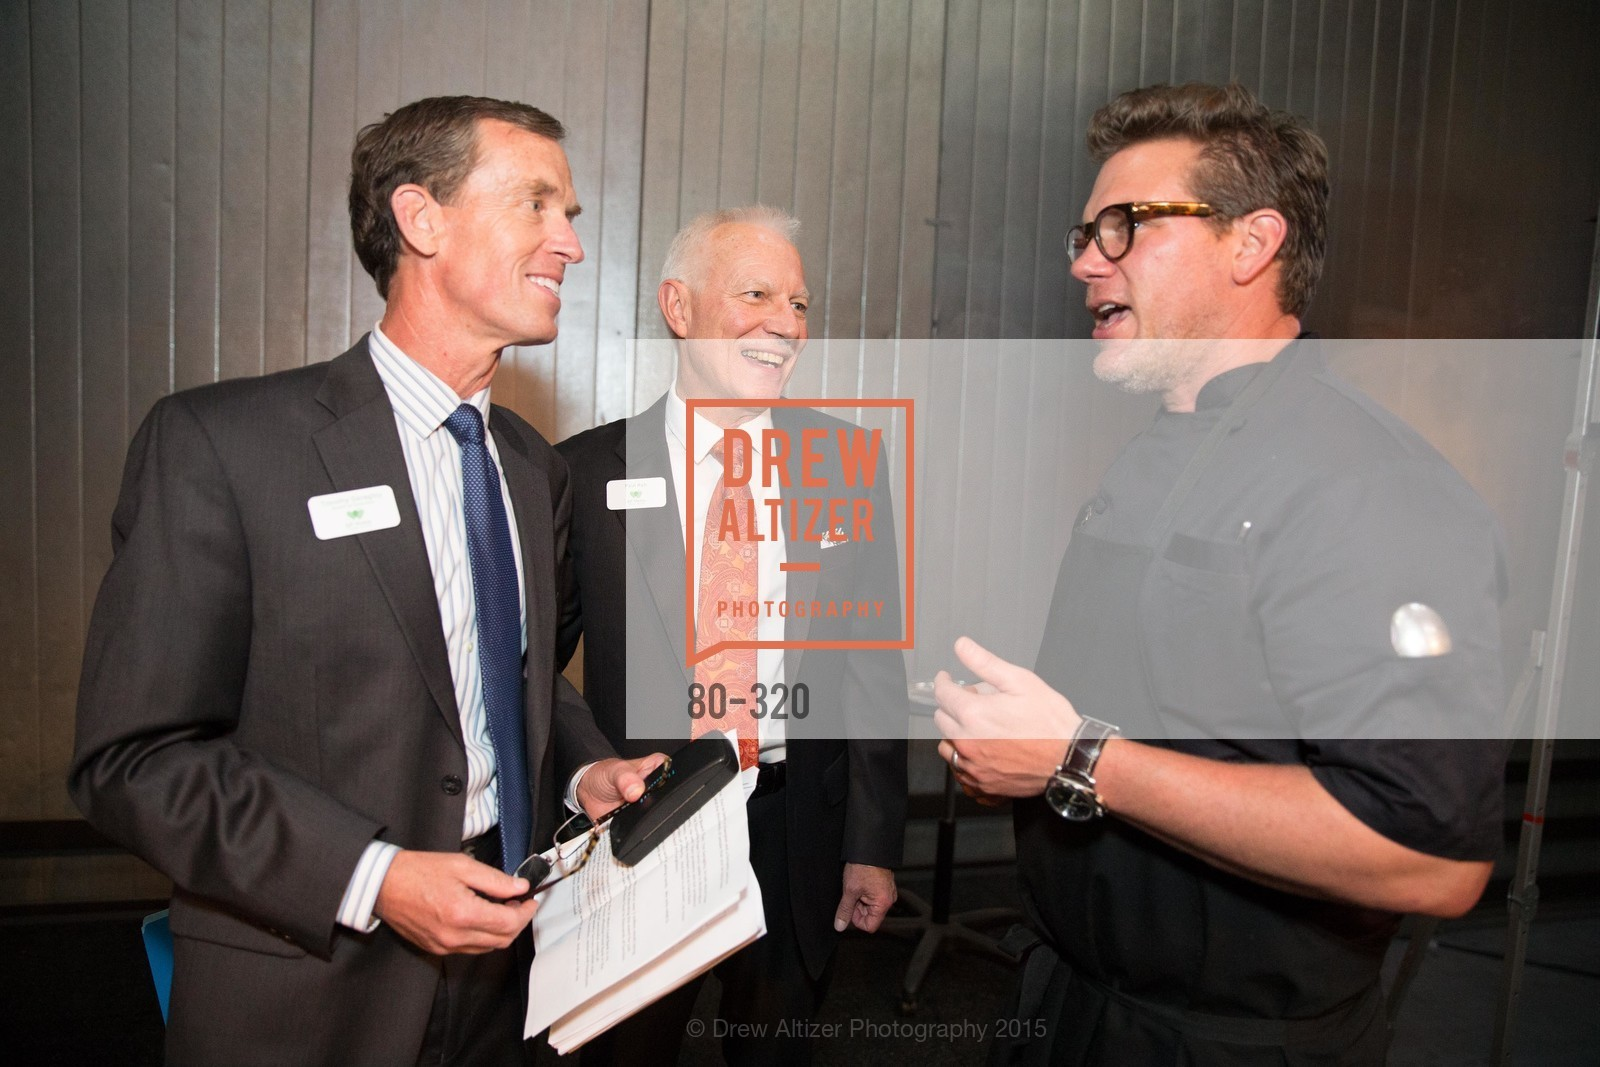 Tim Geraghty, Paul Ash, Tyler Florence, SF - Marin Food Bank Presents ONE BIG TABLE, SF- Marin Food Bank. 900 Pennsylvania Ave, September 26th, 2015,Drew Altizer, Drew Altizer Photography, full-service agency, private events, San Francisco photographer, photographer california